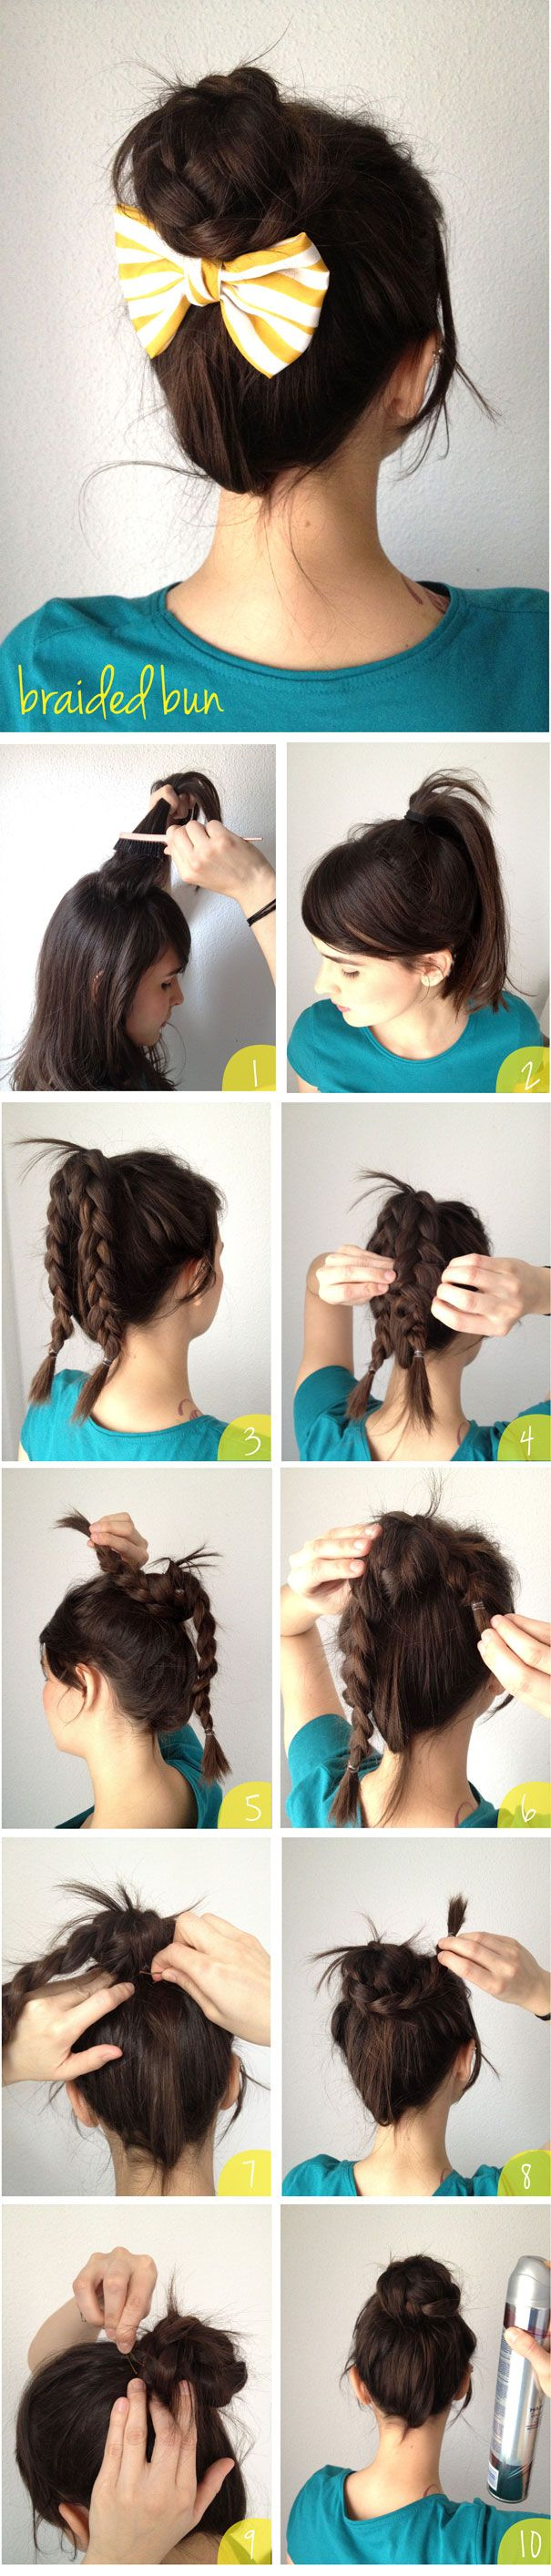 Braided Bun <3 it!: Hair Ideas, Hair Tutorials, Buns Hairstyles, Long Hair, Hairstyles Tutorials, Messy Buns, Hair Style, Hair Buns, Braids Buns